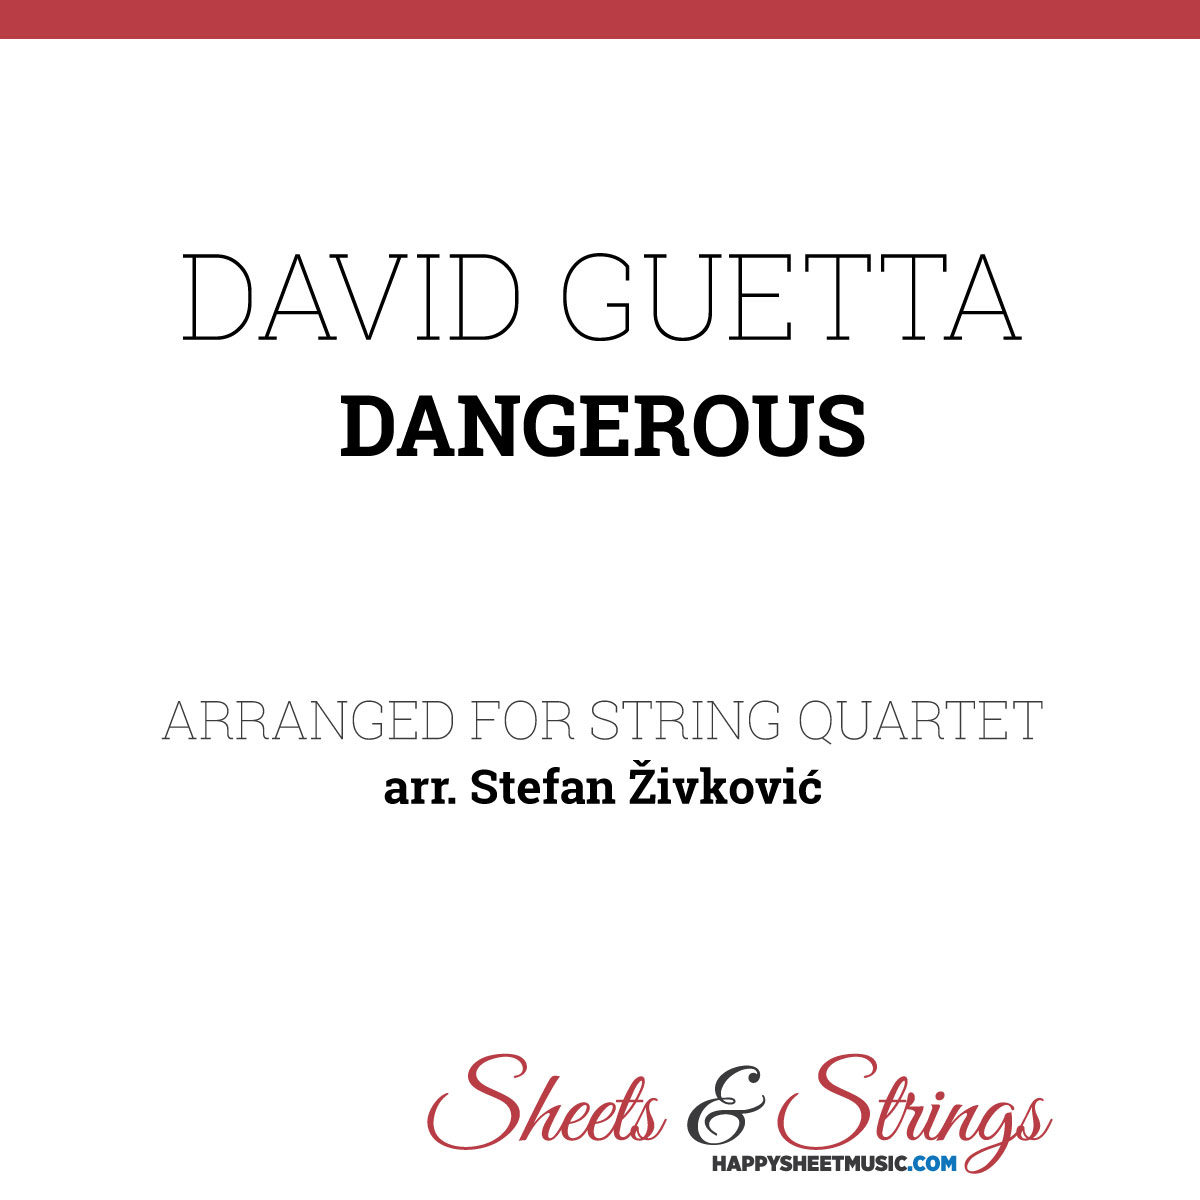 David Guetta Dangerous - Sheet Music for String quartet - Violin Sheet Music - Viola Sheet Music - Cello Sheet Music